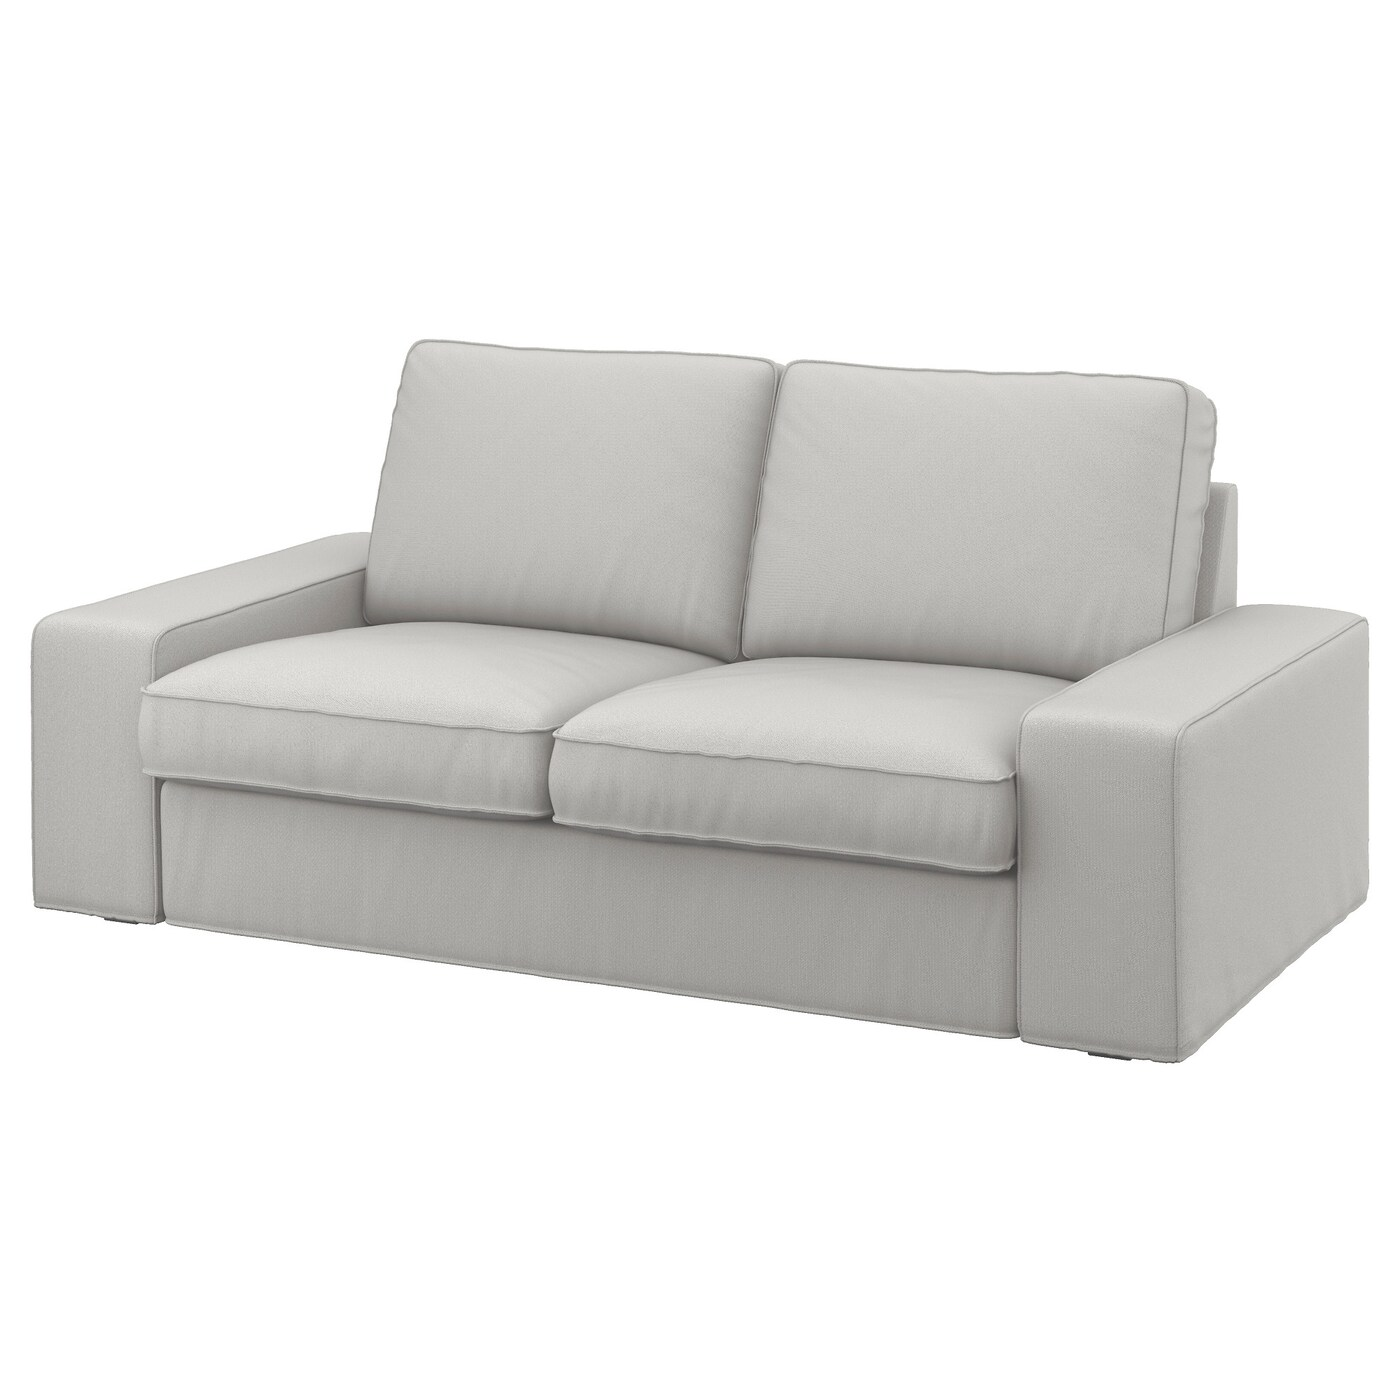 2 Seater Ikea Sofa Cover Kivik Two Seat Sofa Ramna Light Grey